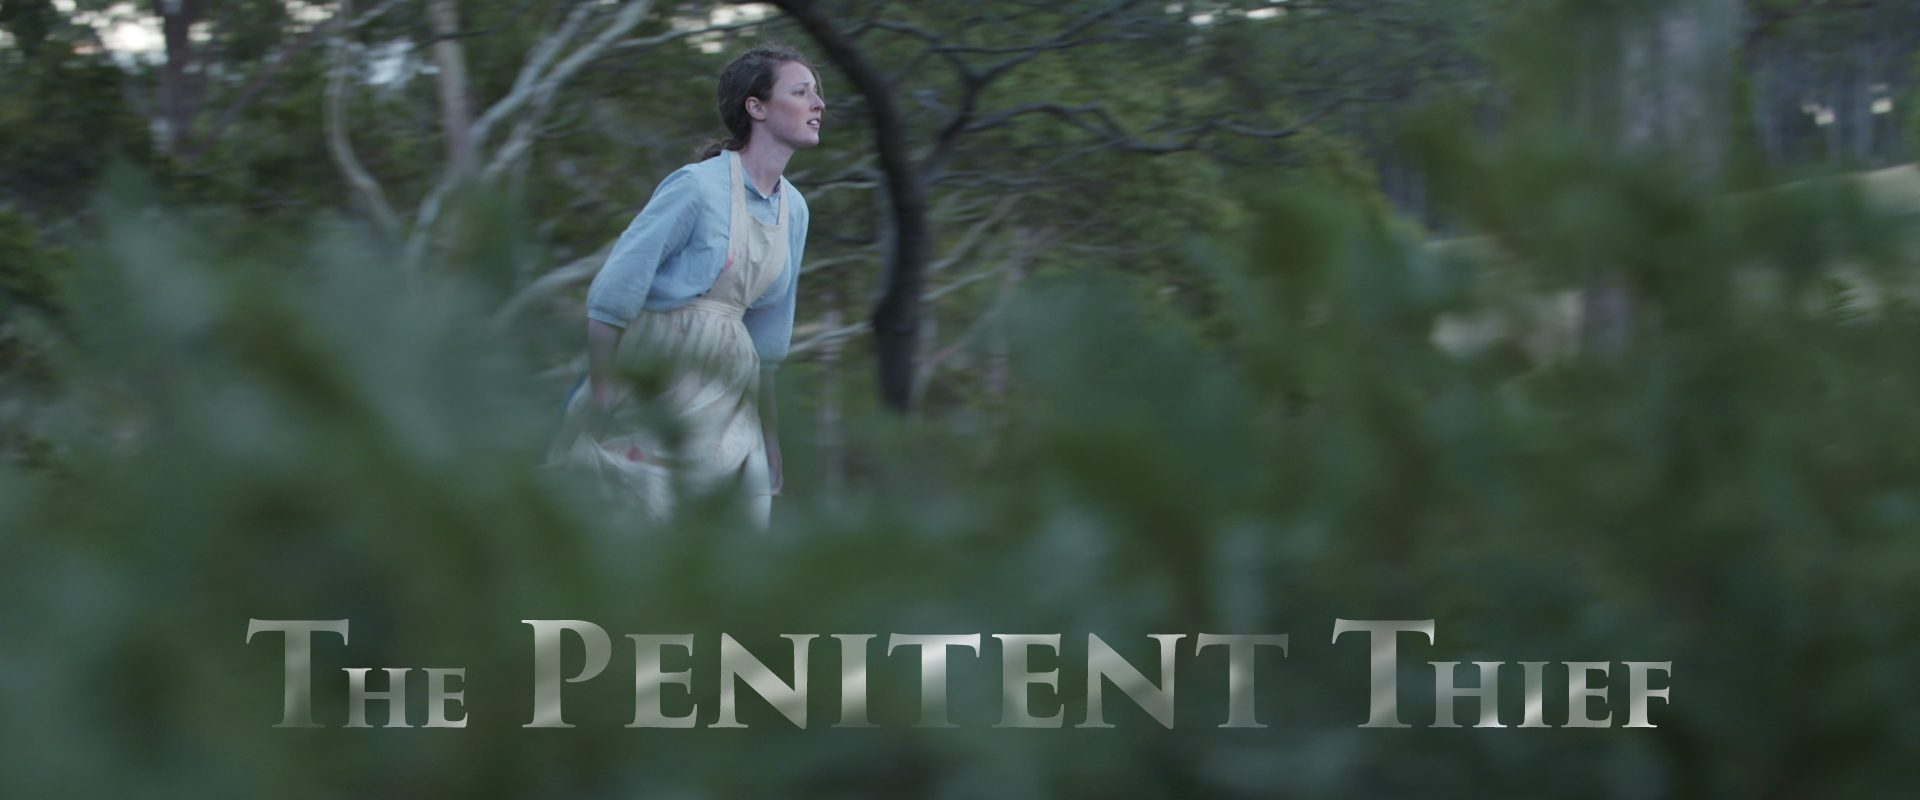 The Penitent Thief - BLOG PIC